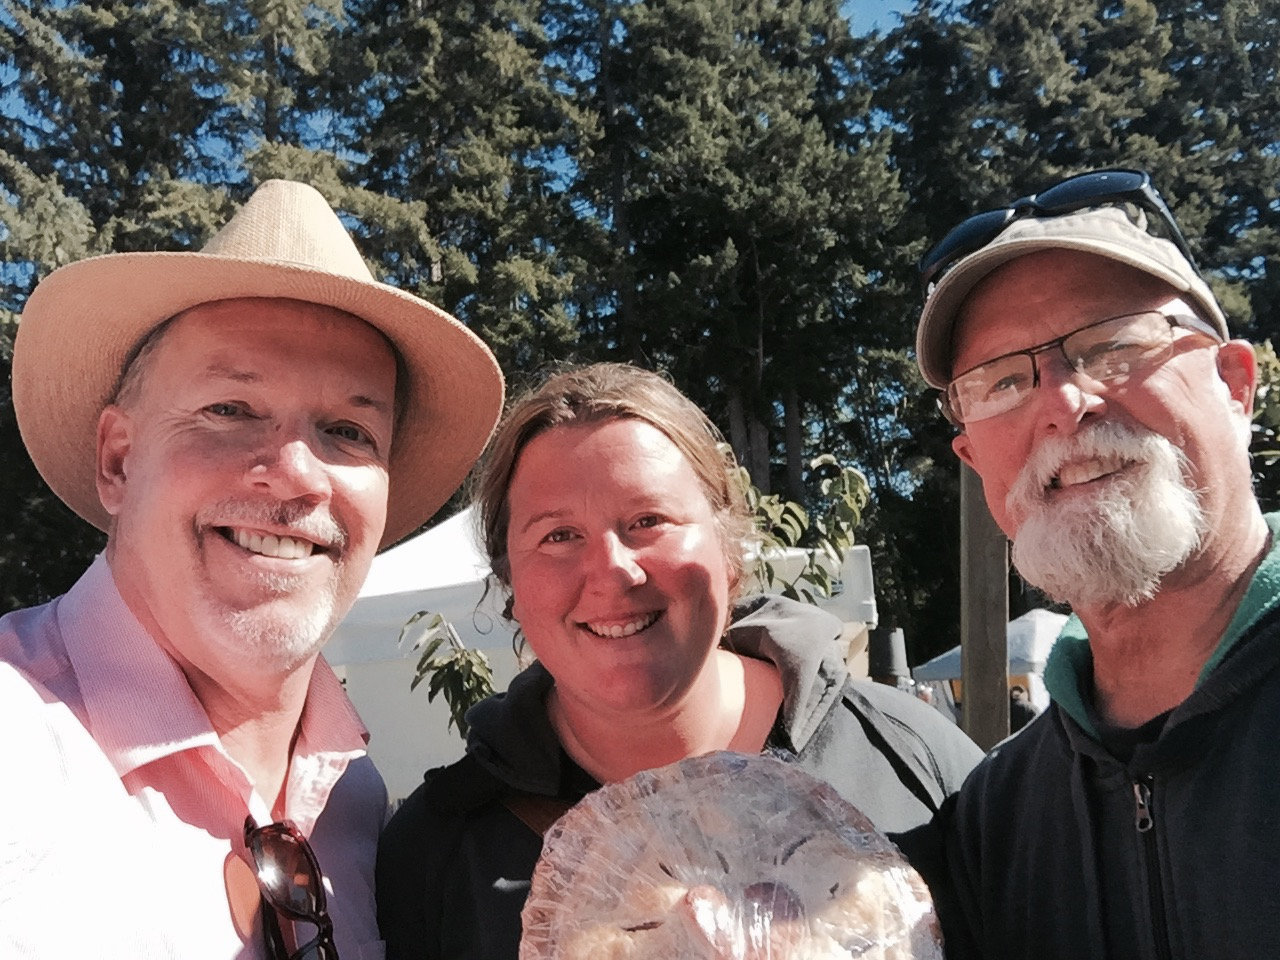 John Horgan with daughter Jessica Boquist and her dad John Boquist